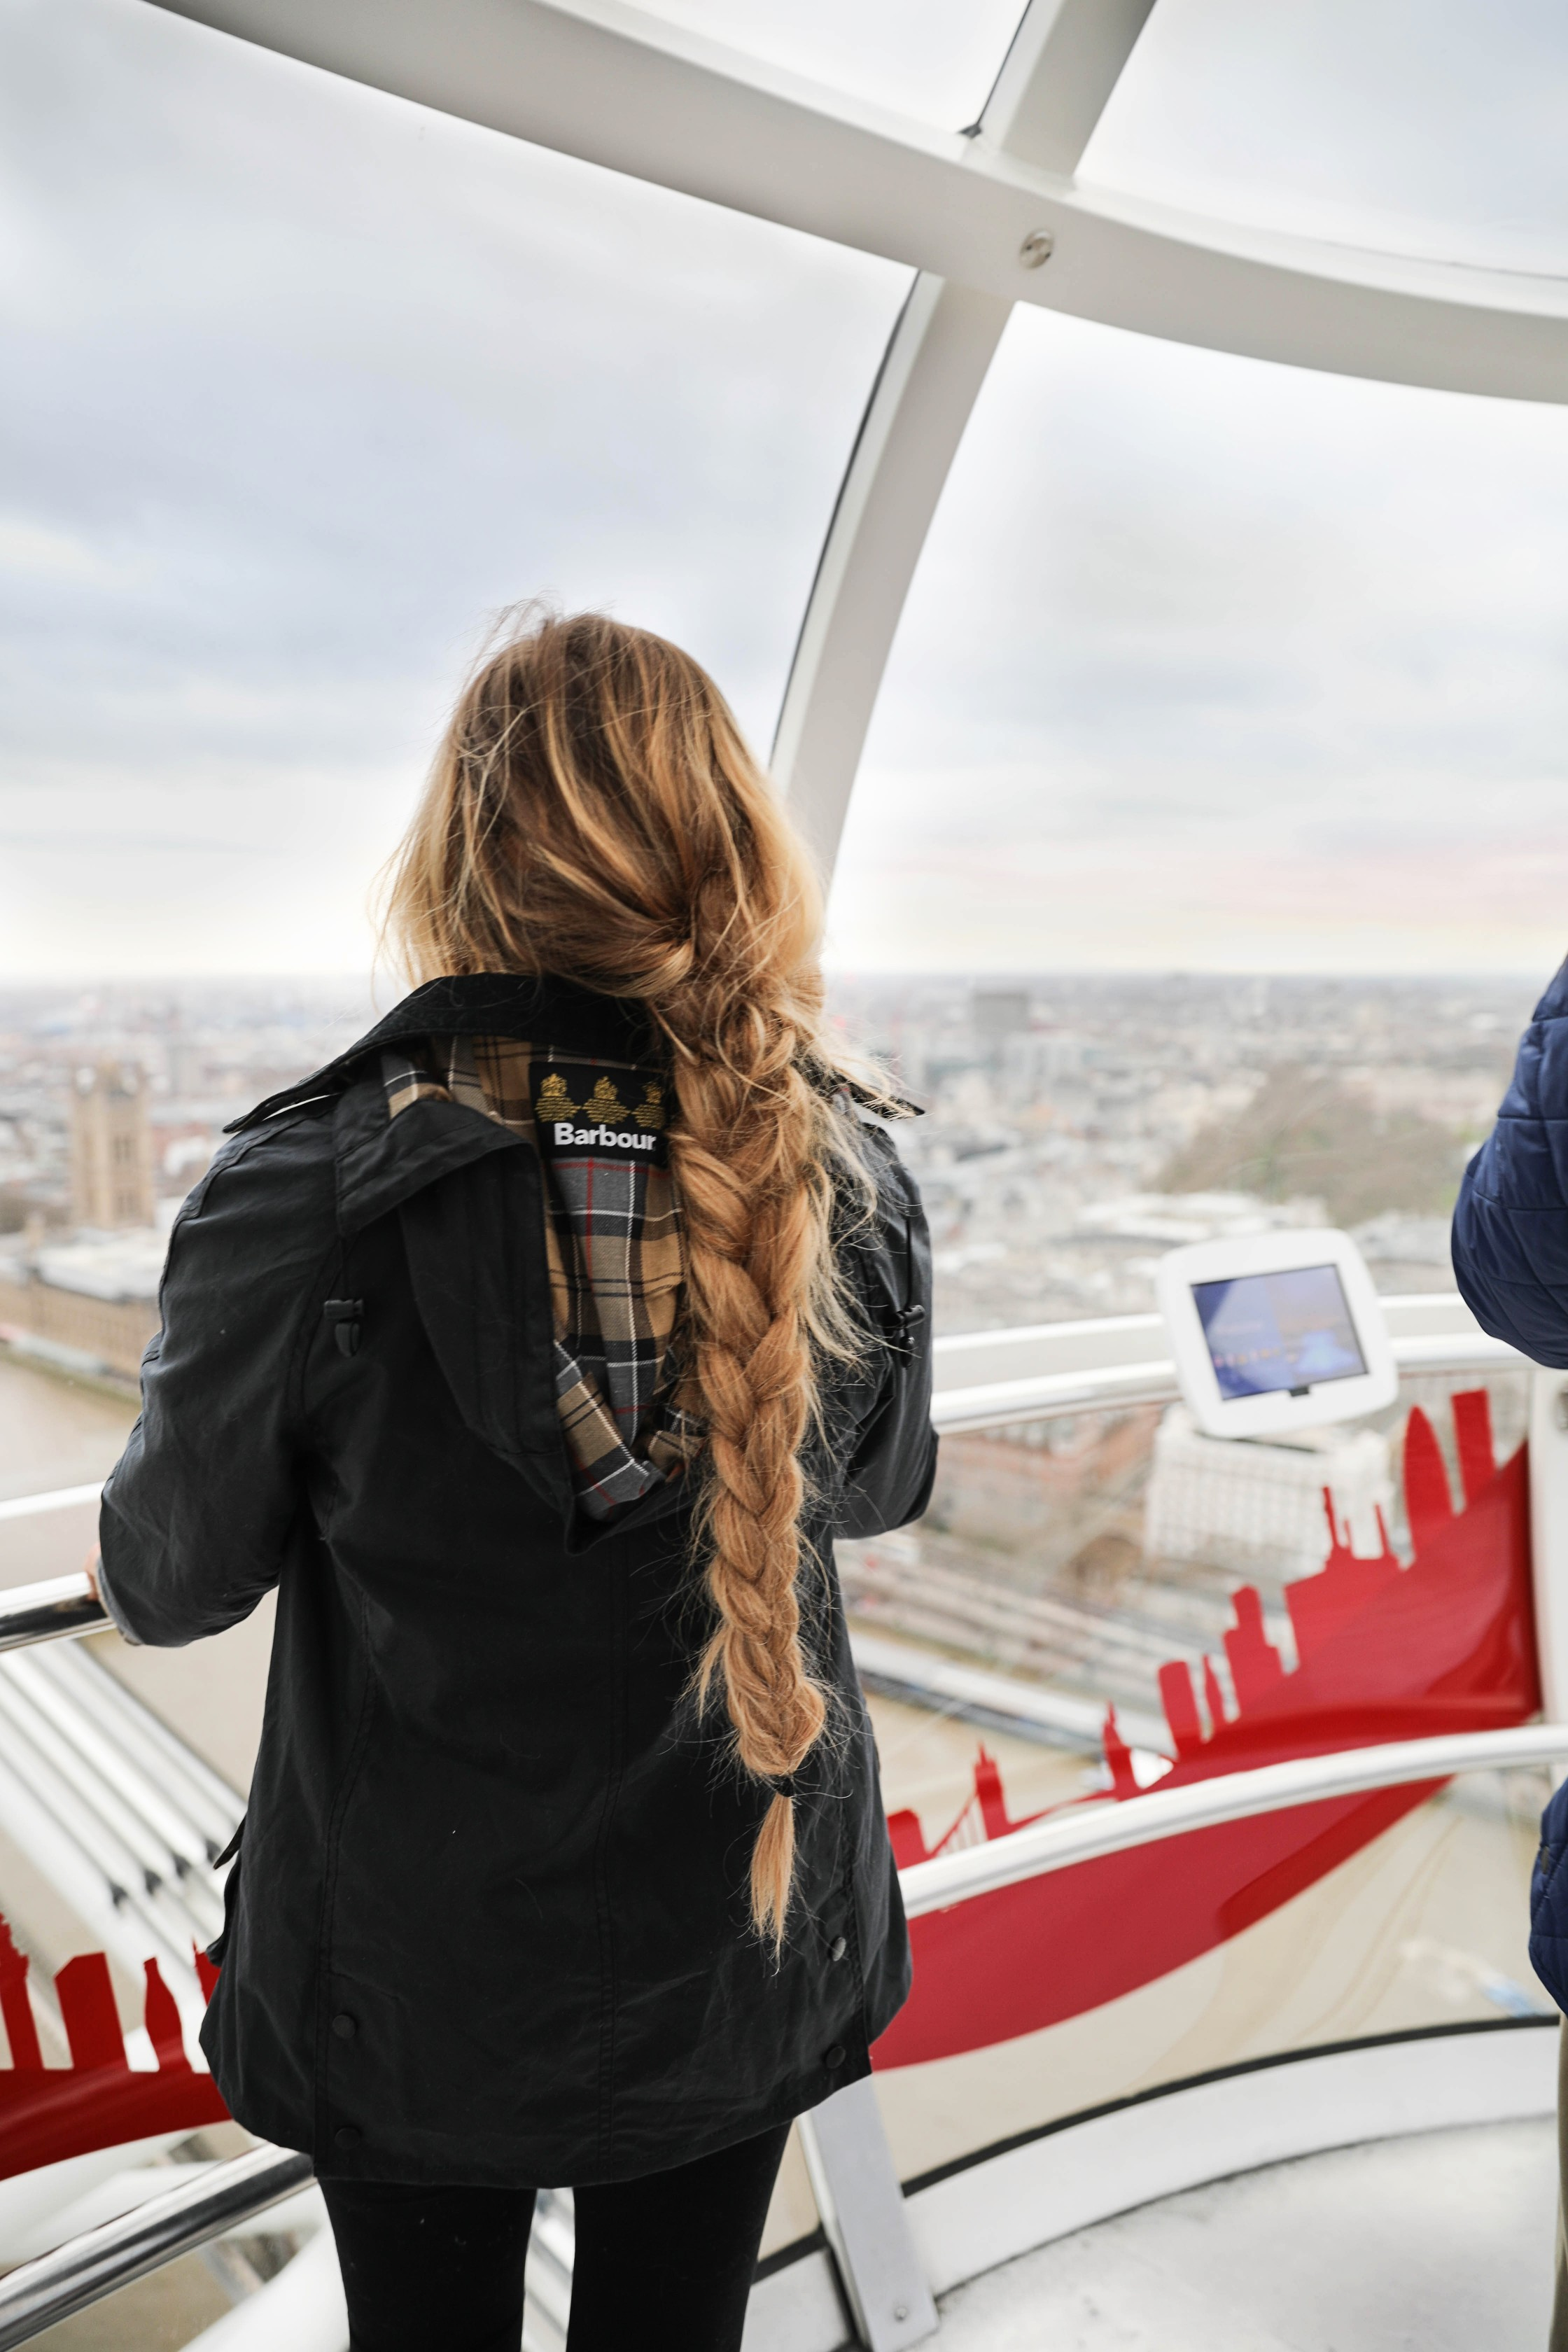 London Adventure post! Photos from the London Eye! Wearing a Barbour coat and England crewneck with my favorite gold sneakers by new balance! By Lauren Lindmark on daily dose of charm dailydoseofcharm.com